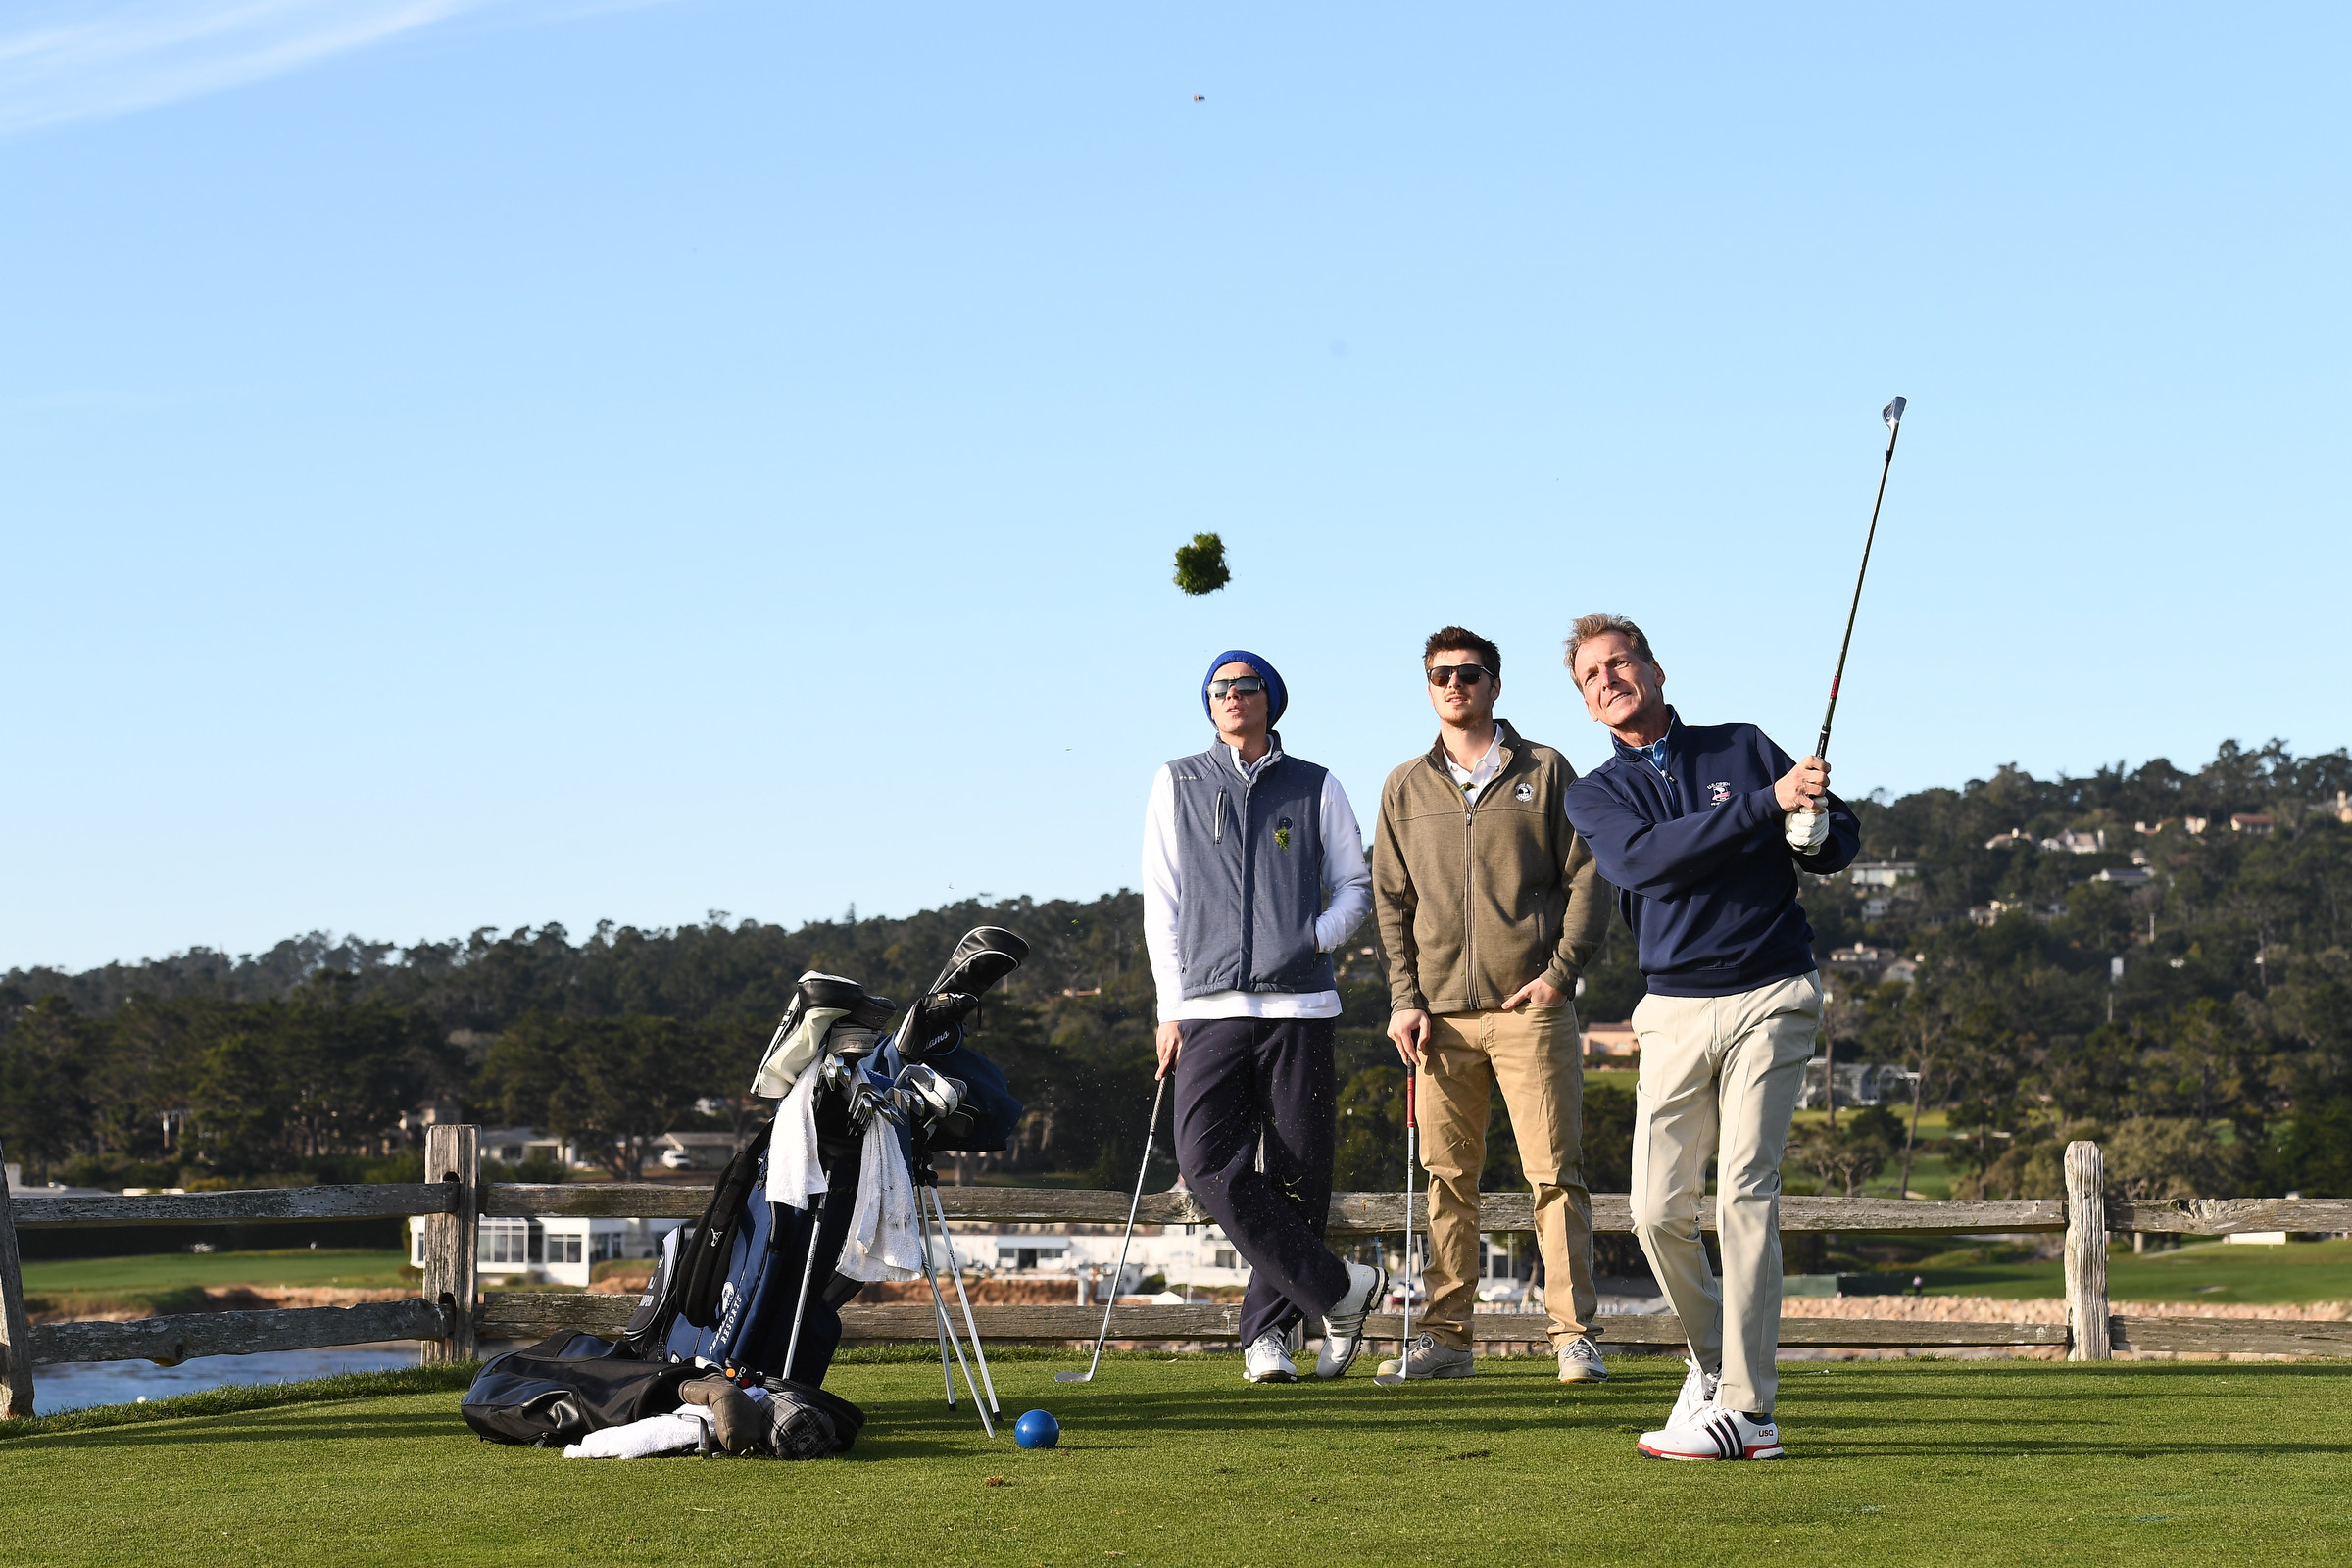 Harper, on the 7th tee at Pebble Beach, passed his love for golf on to his two sons, Tucker (far left) and J.T. (center).